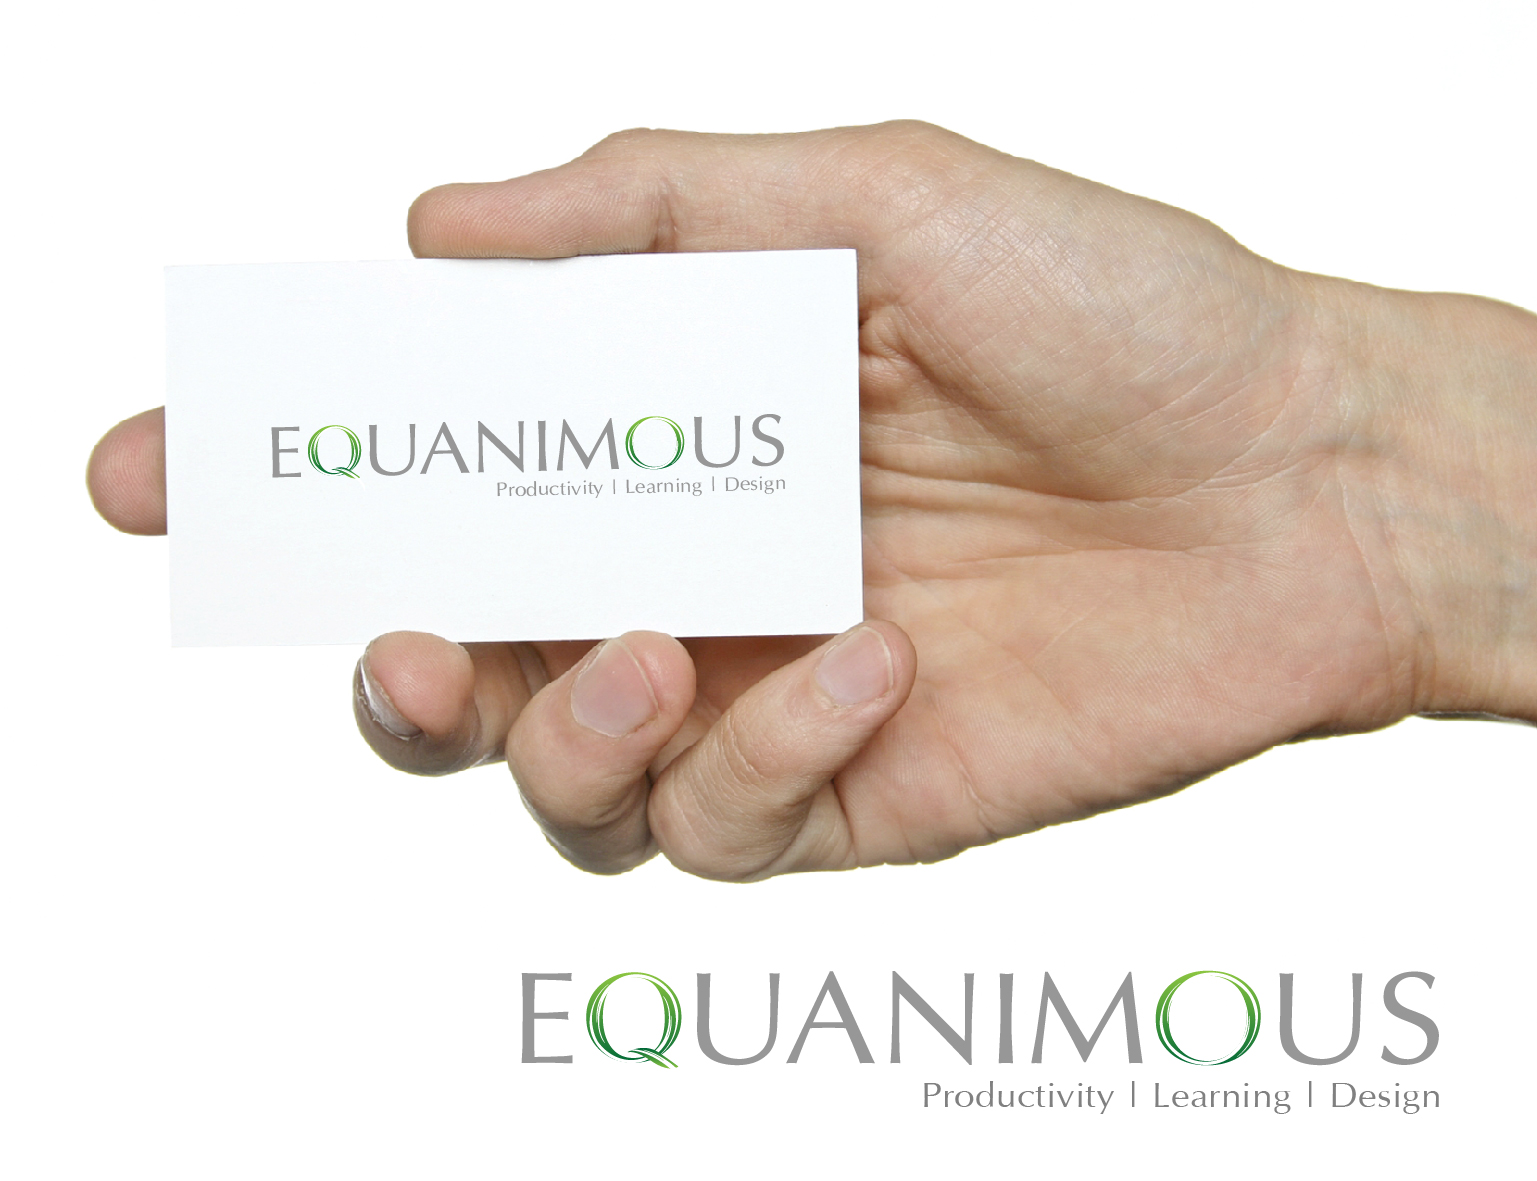 Logo Design by 3draw - Entry No. 558 in the Logo Design Contest Logo Design : EQUANIMOUS : Productivity | Learning | Design.